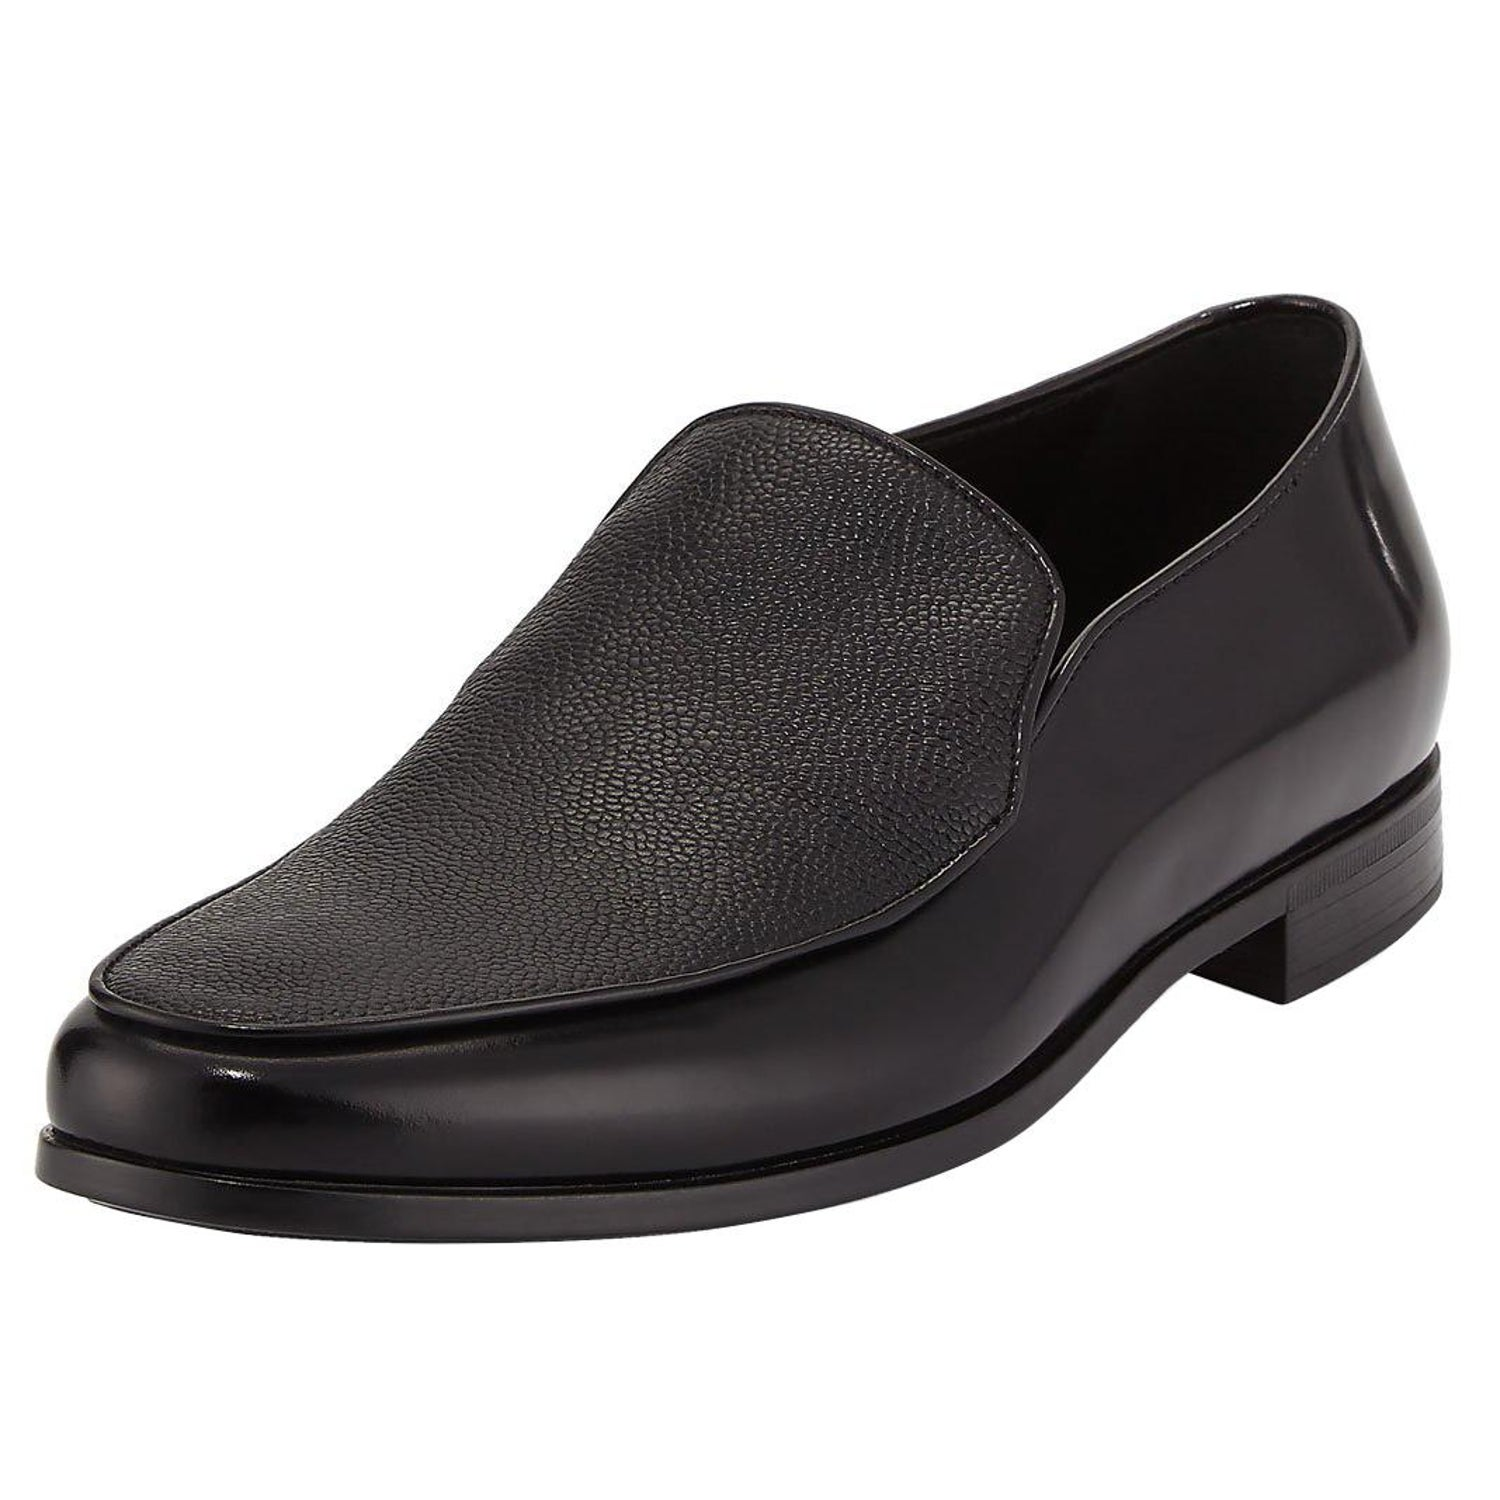 c534b677f6d Giorgio Armani Mens Black Saffiano Leather Venetian Loafers For Sale at  1stdibs